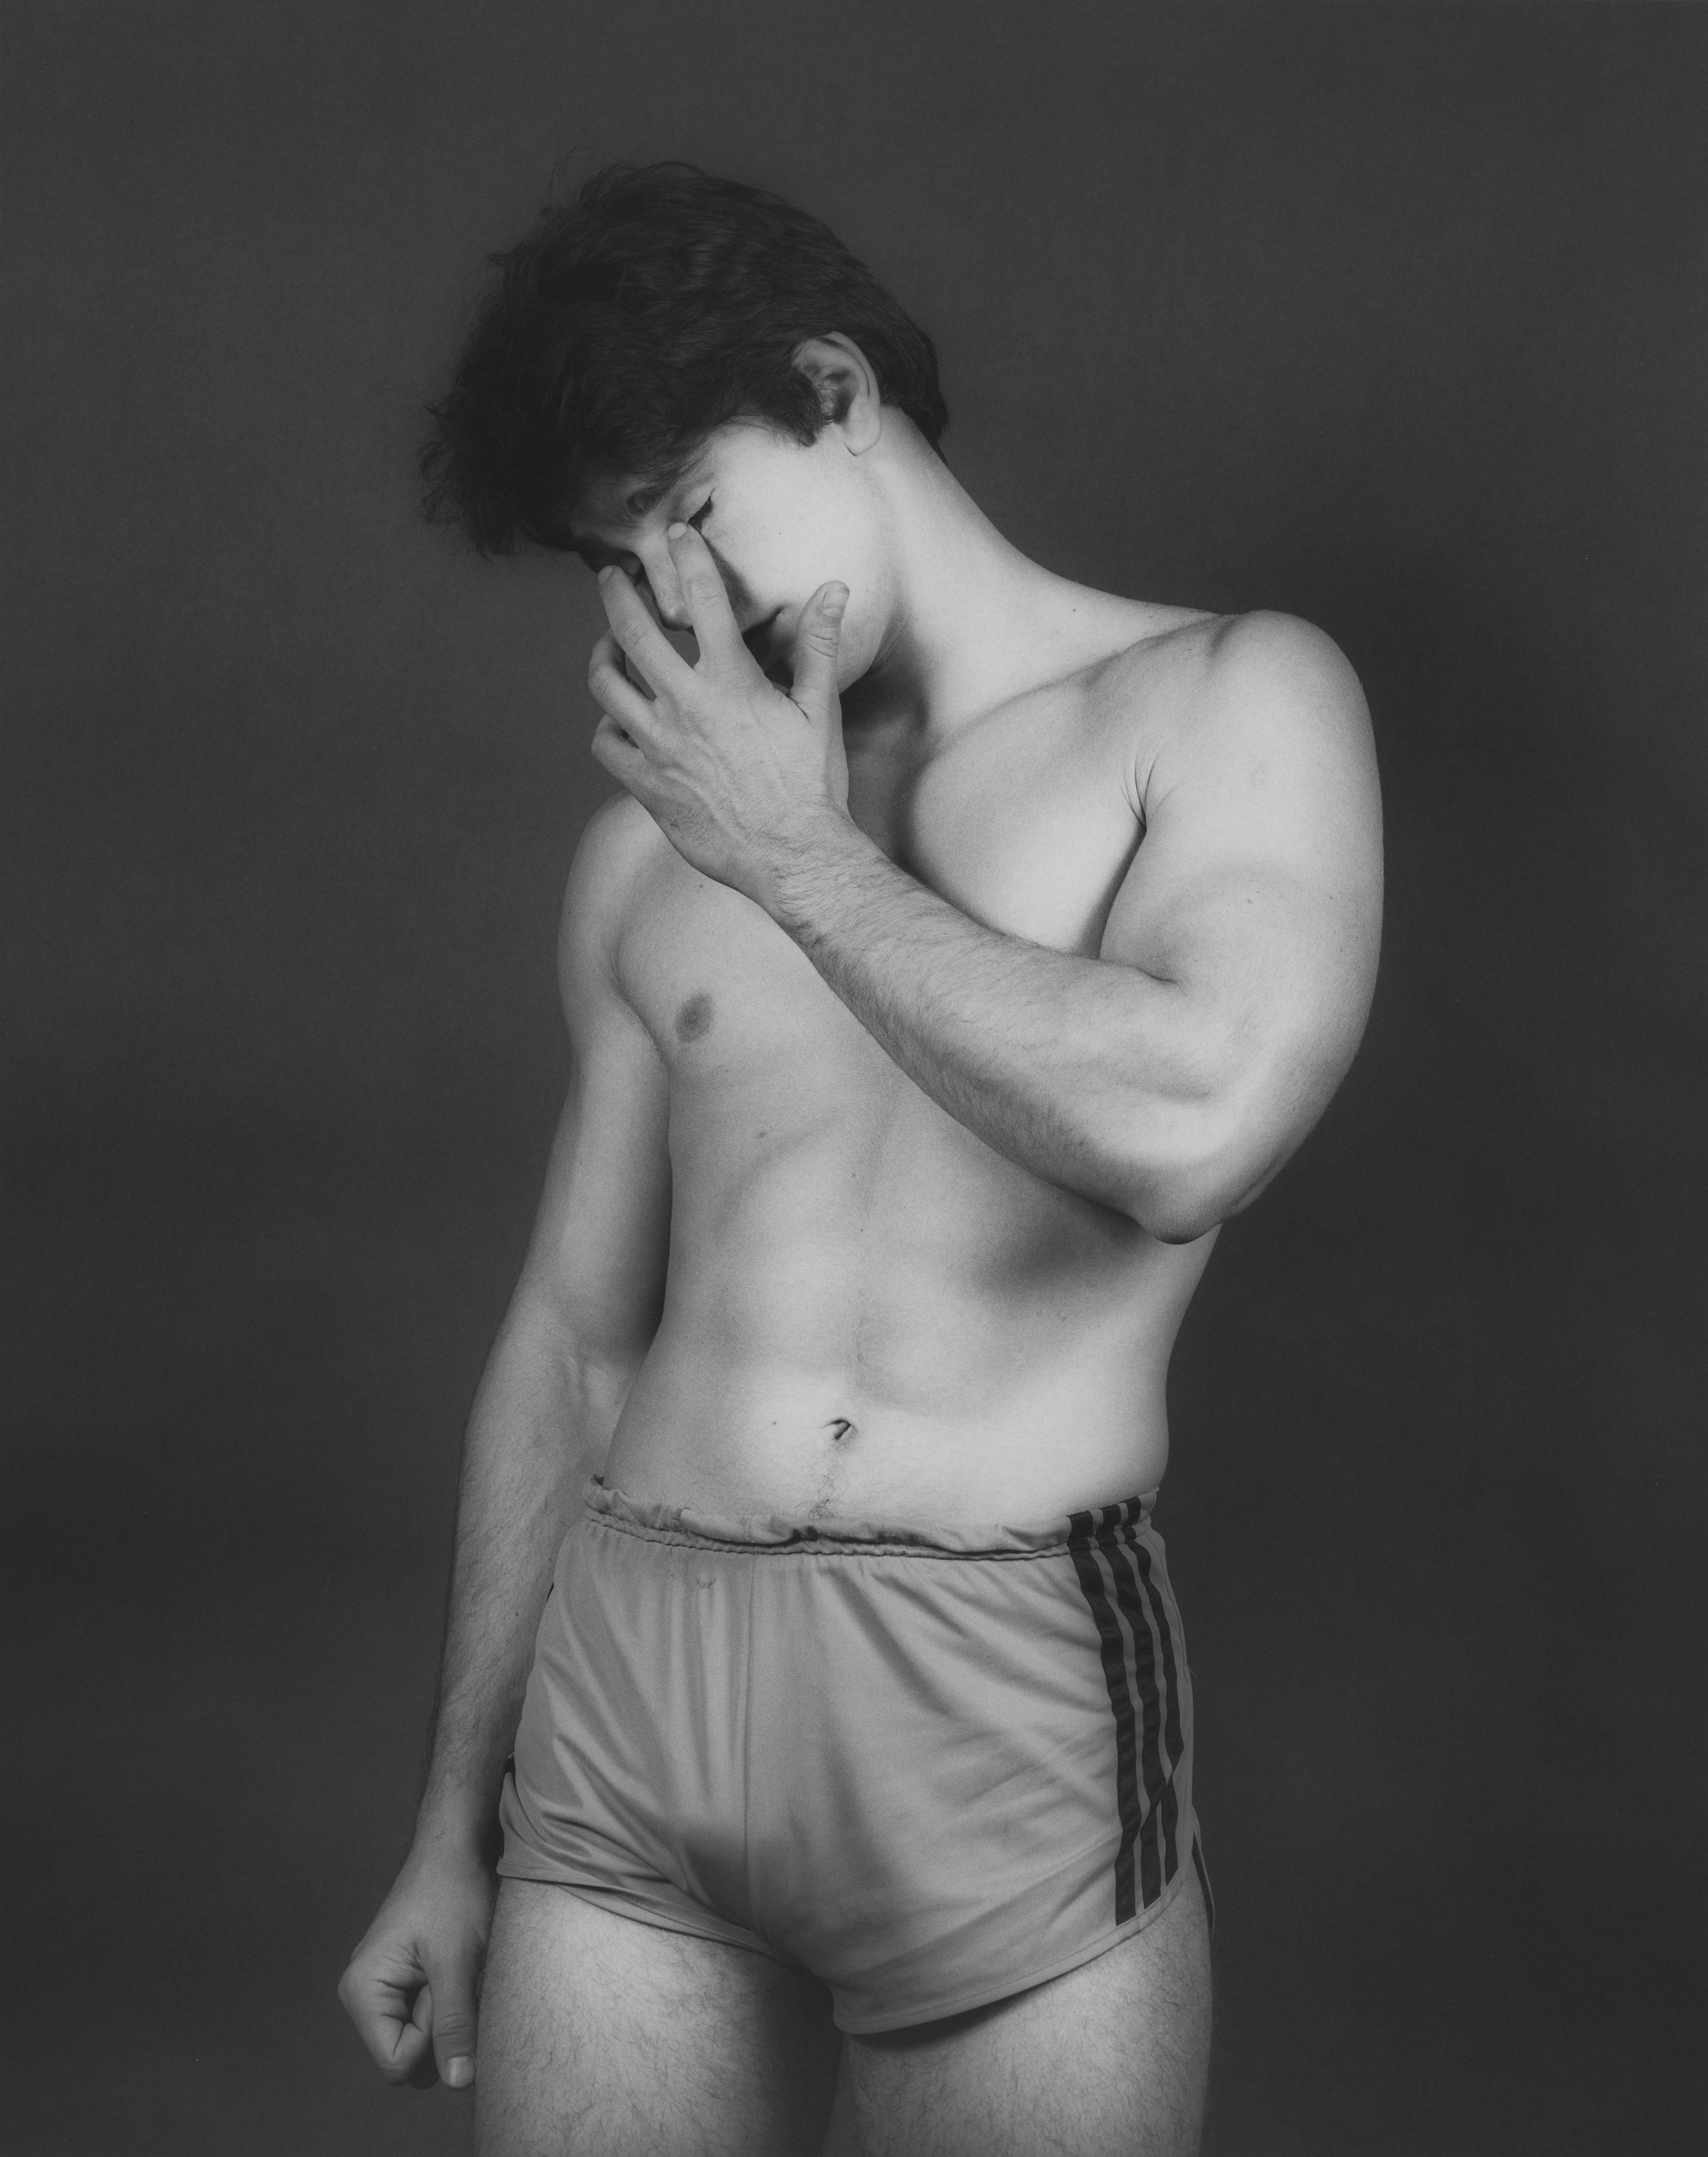 Arthur Diovanni  1982 © Robert Mapplethorpe Foundation. Courtesy Alison Jacques Gallery, London